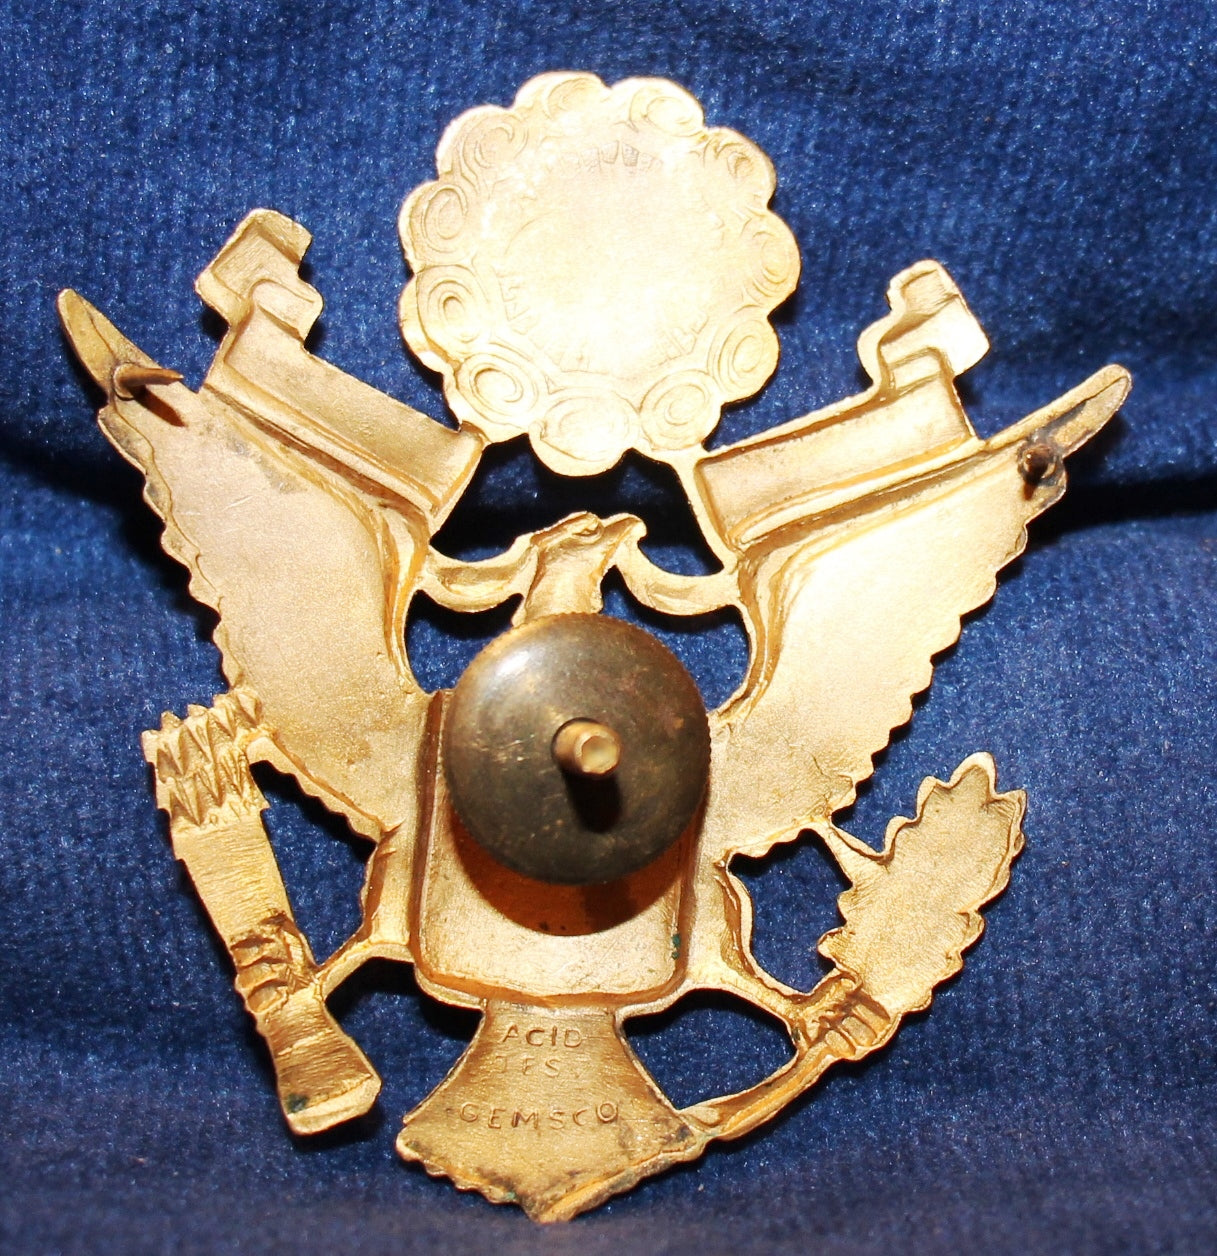 WWII US ARMY/ARMY AIR FORCE OFFICER'S GEMSCO LARGE HAT BADGE | M&